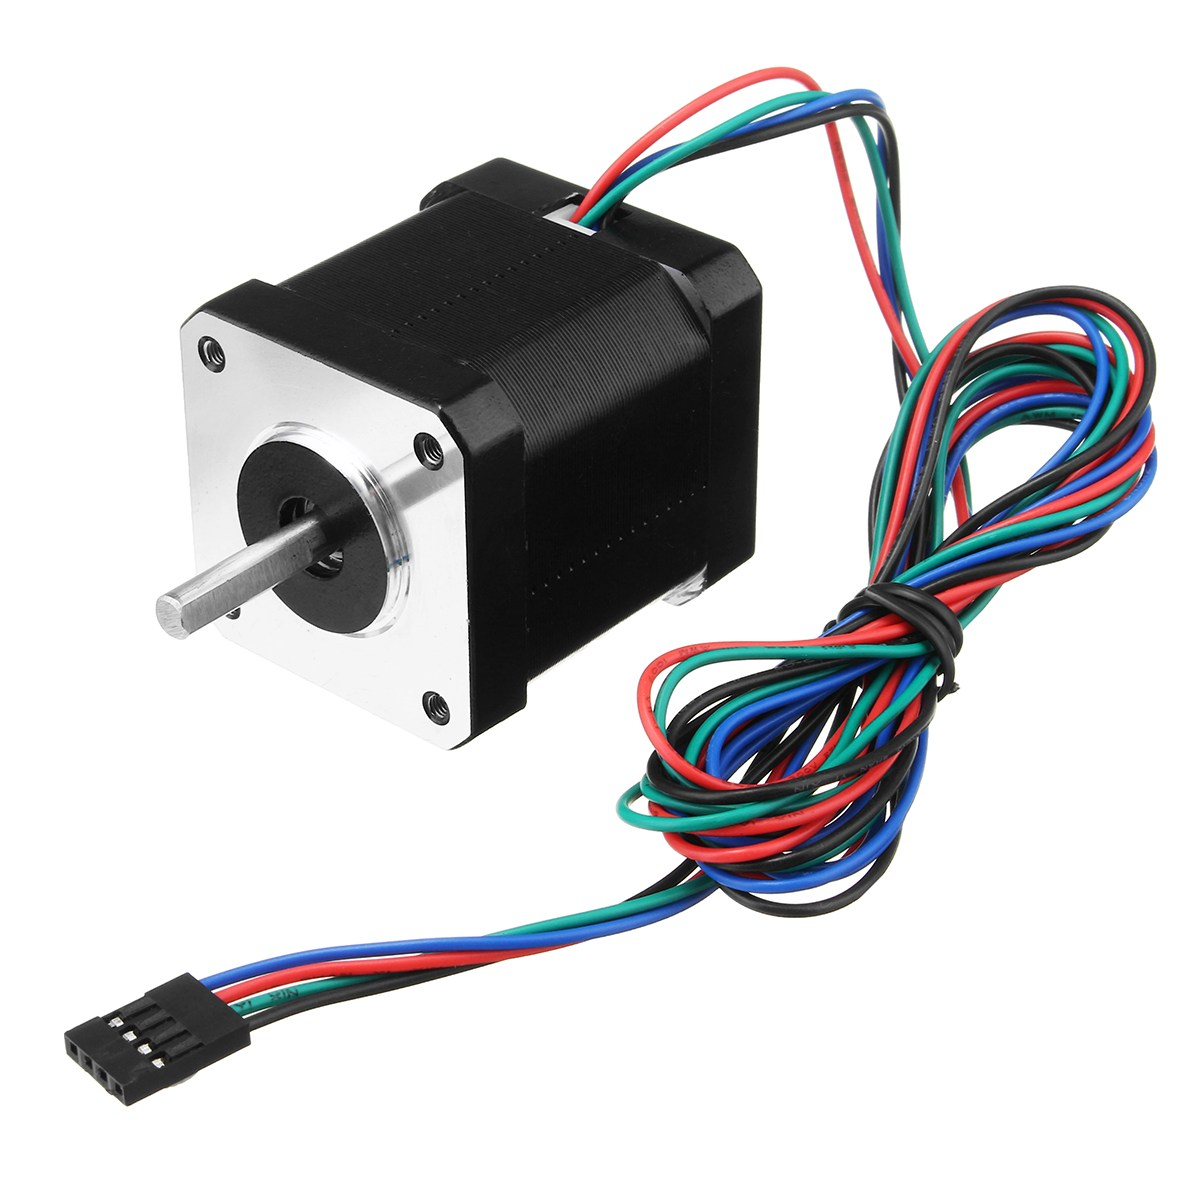 1 pcs Brand New High Quality DC Motor Mechanical End Stop Endstop Limit Switch With Cable Stepper Motor for 3D Printer formulamod pci 6pin motherboard power extension cable 18awg 6pin extension cable for water cooling computer fmpci6p c